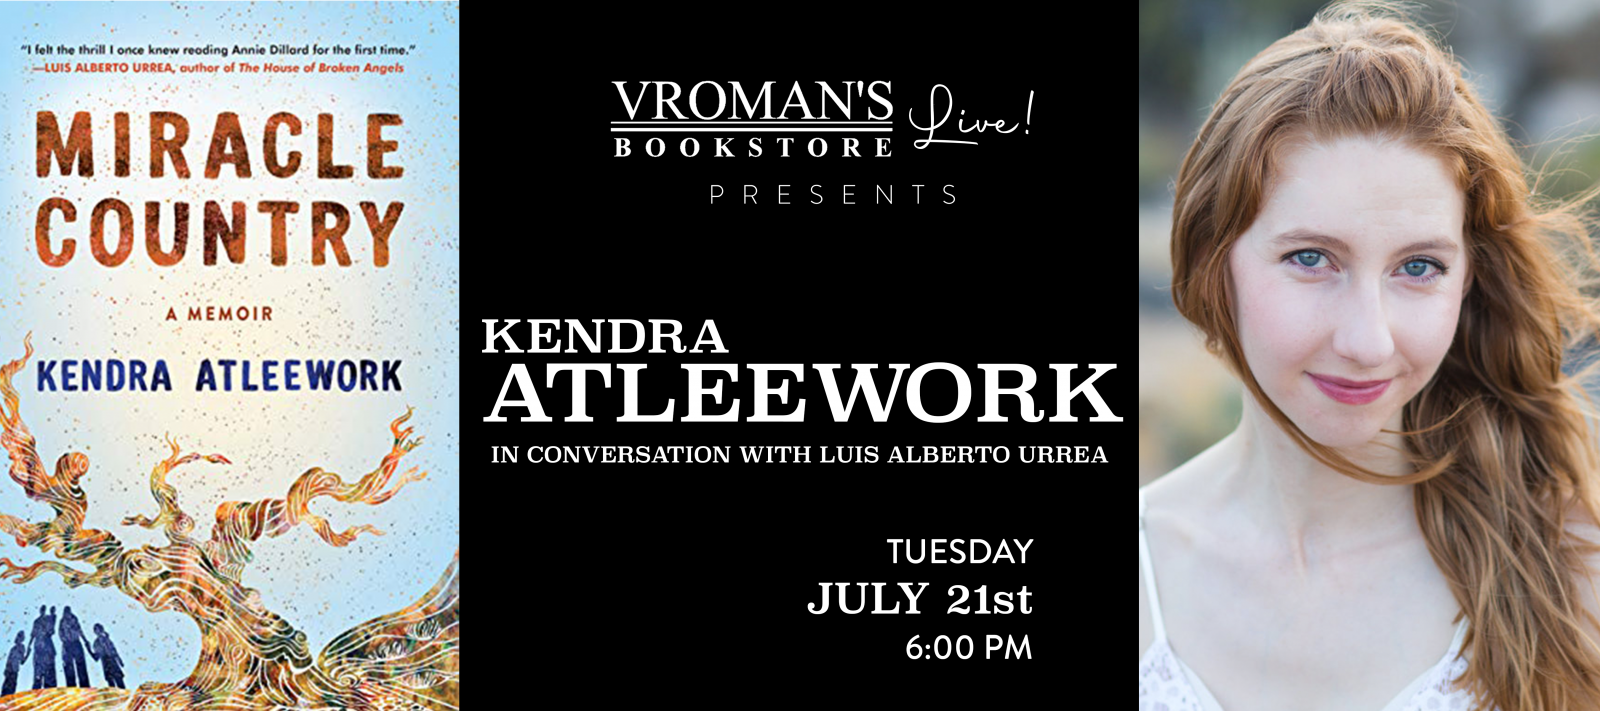 Kendra Atleework, in conversation with Luis Alberto Urrea, on Tuesday July 21st at 6pm